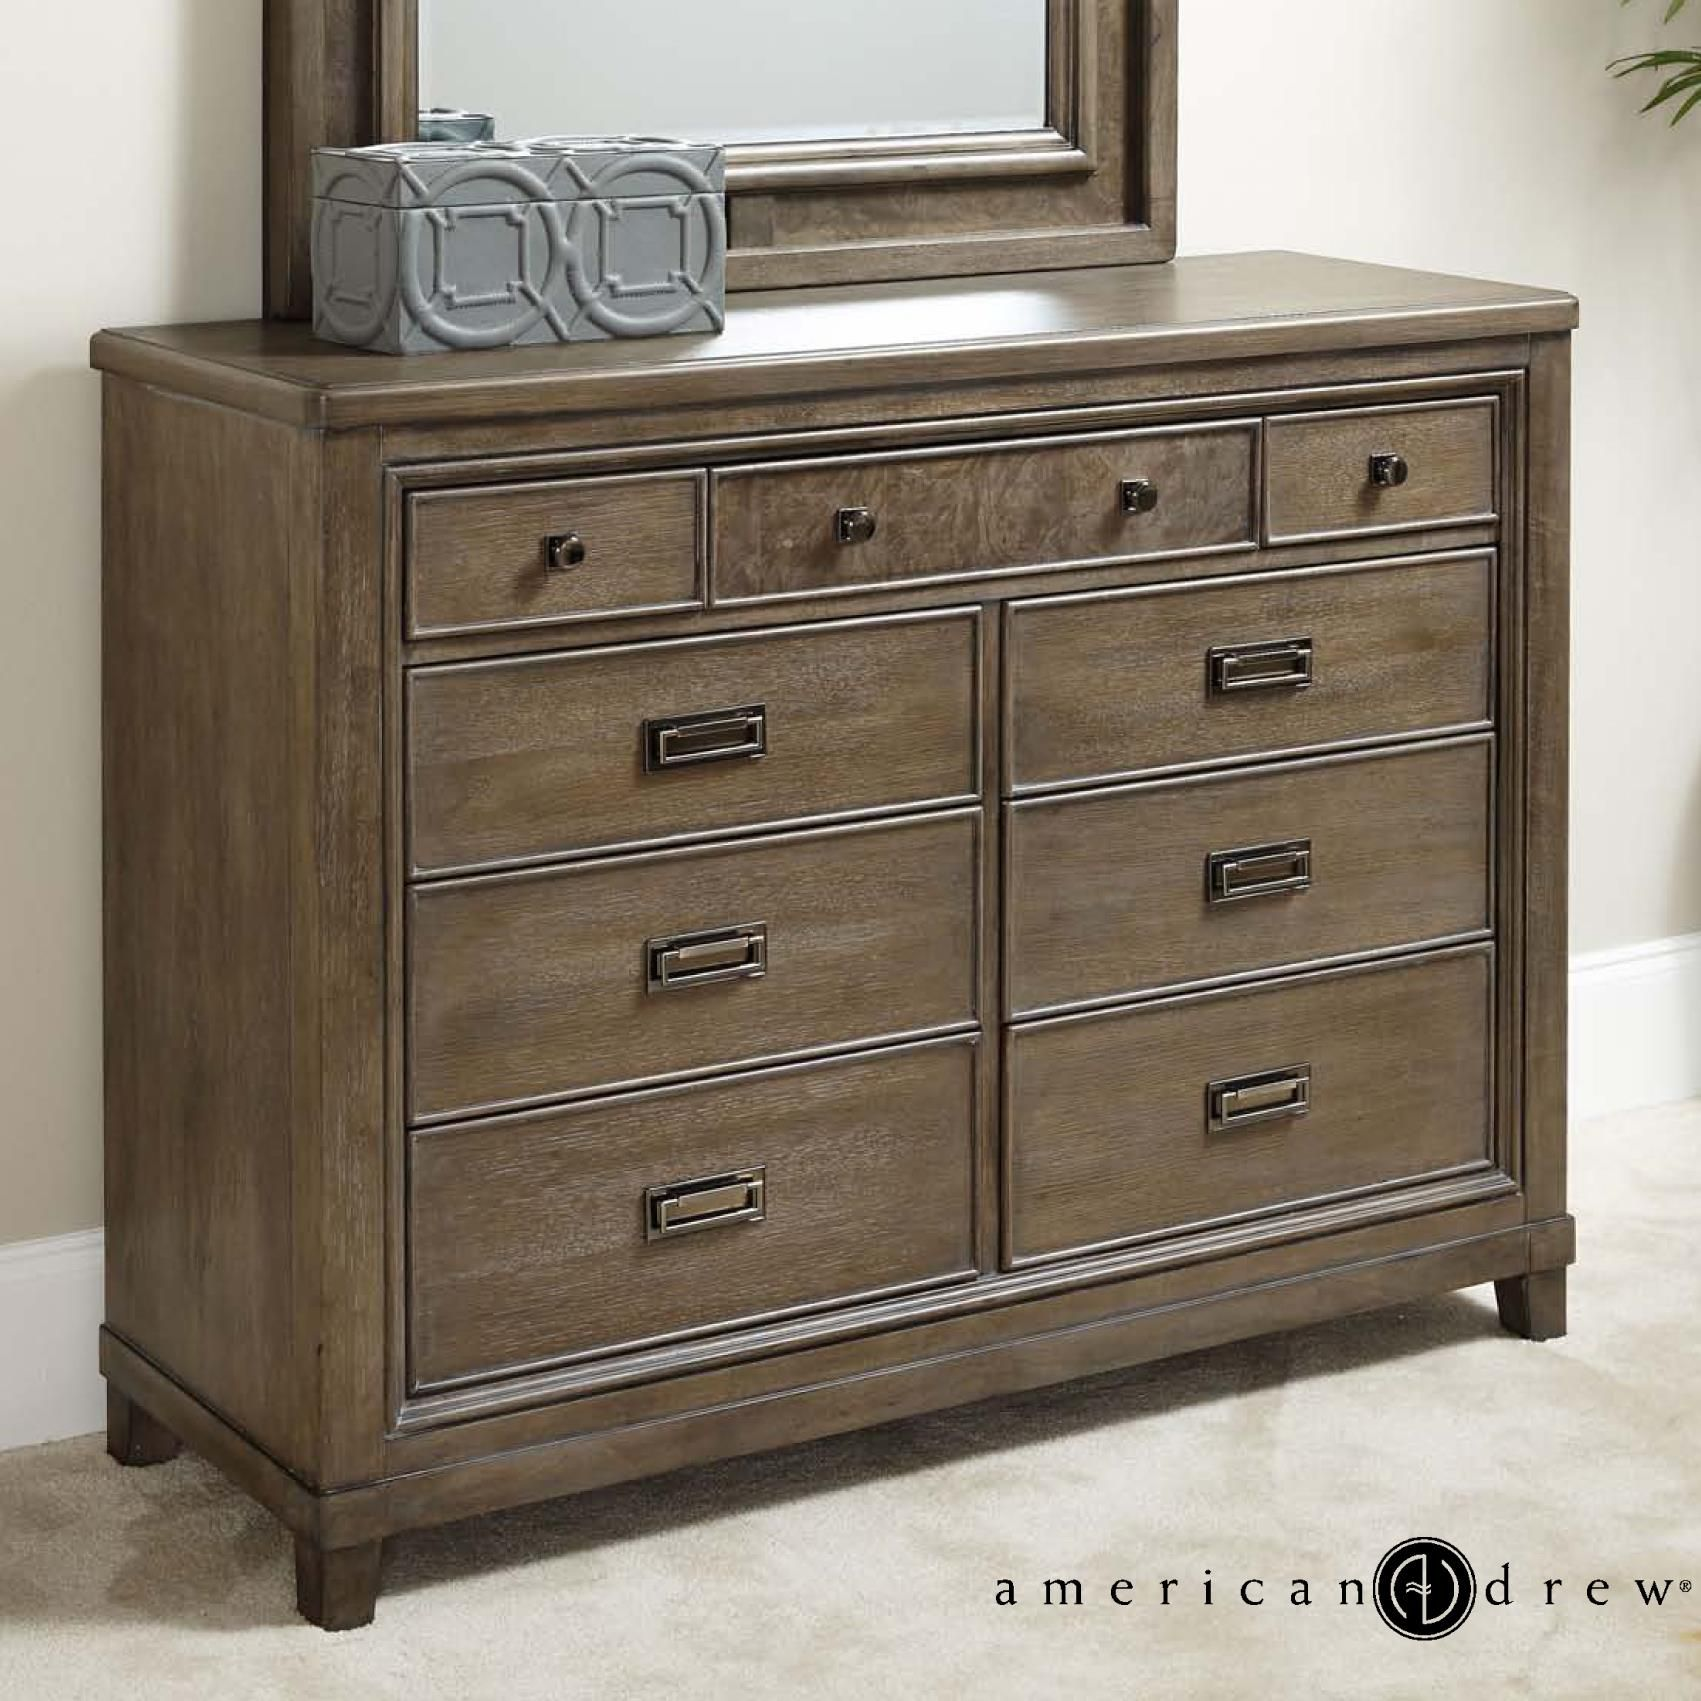 Attractive Park Studio Contemporary Dresser With Drop Top Center Drawer With Media  Storage By American Drew At Darvin Furniture